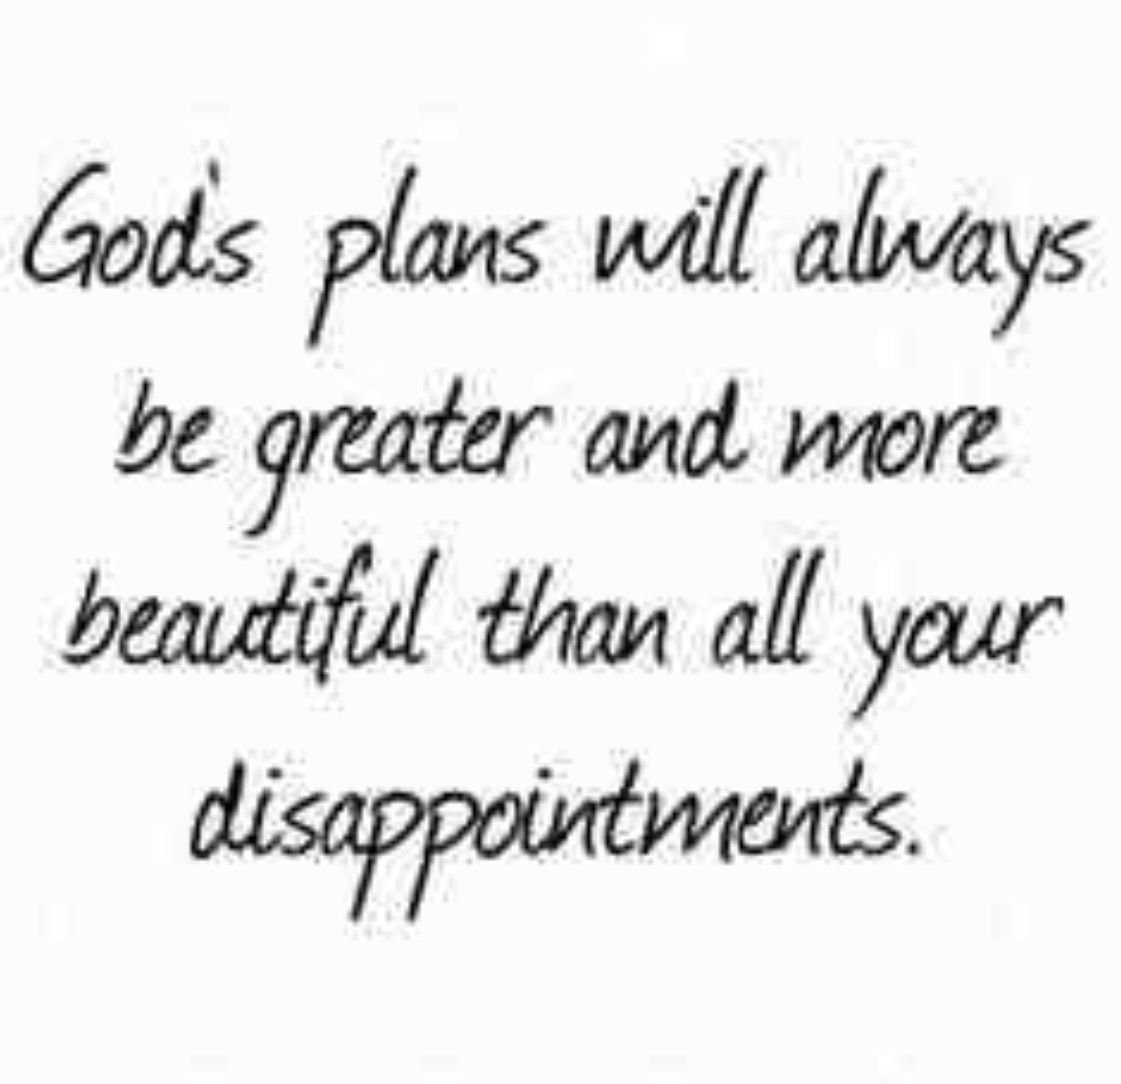 God's plans is bigger than your failures or disappointments